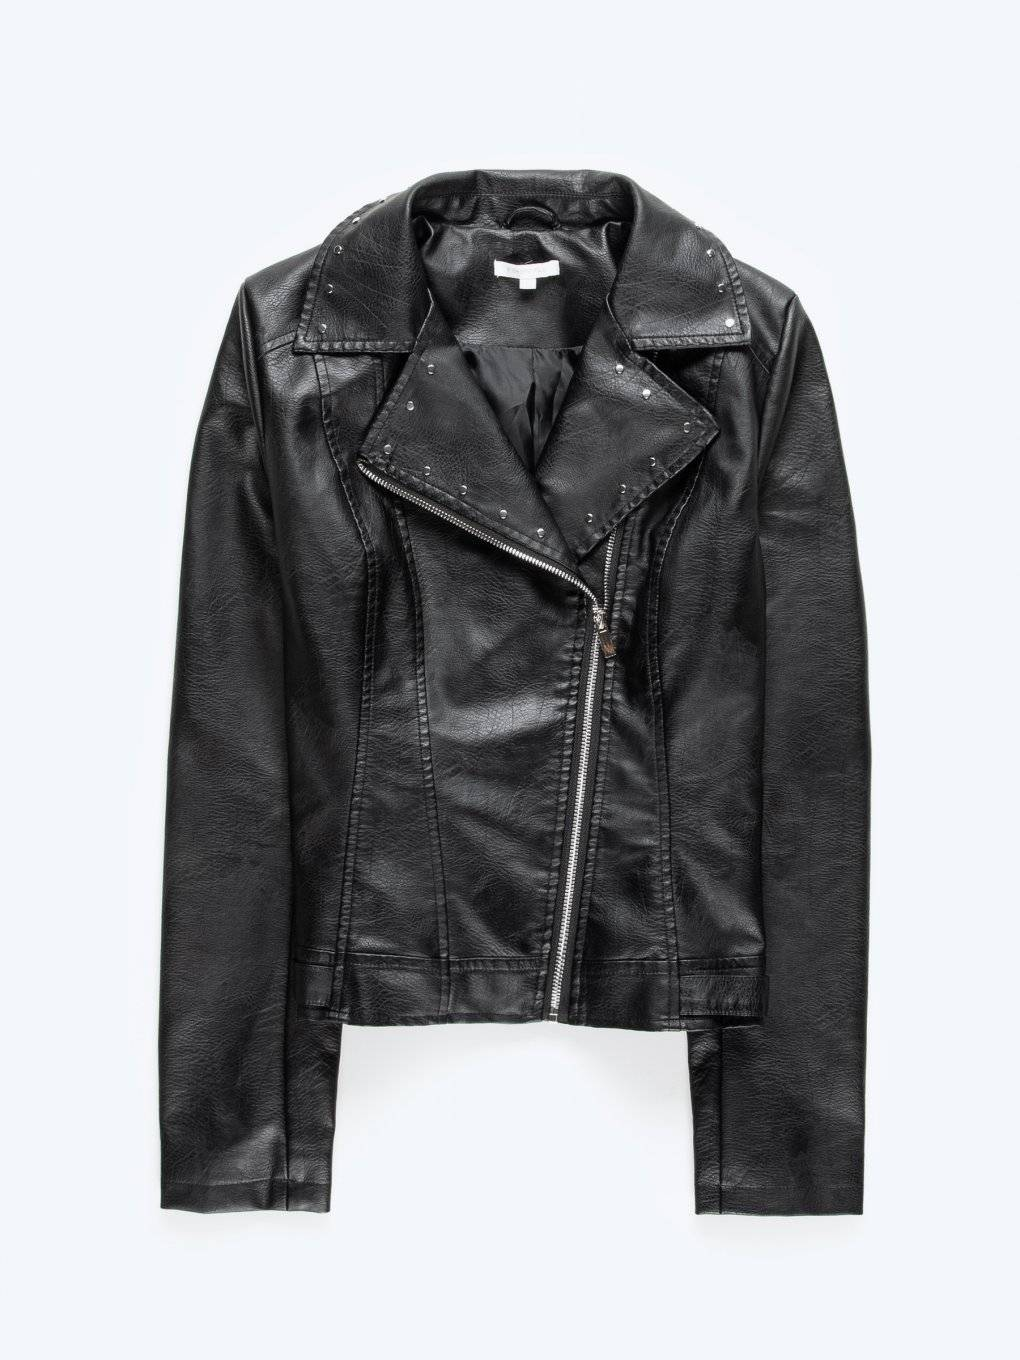 Faux leather biker jacket with studs on collar